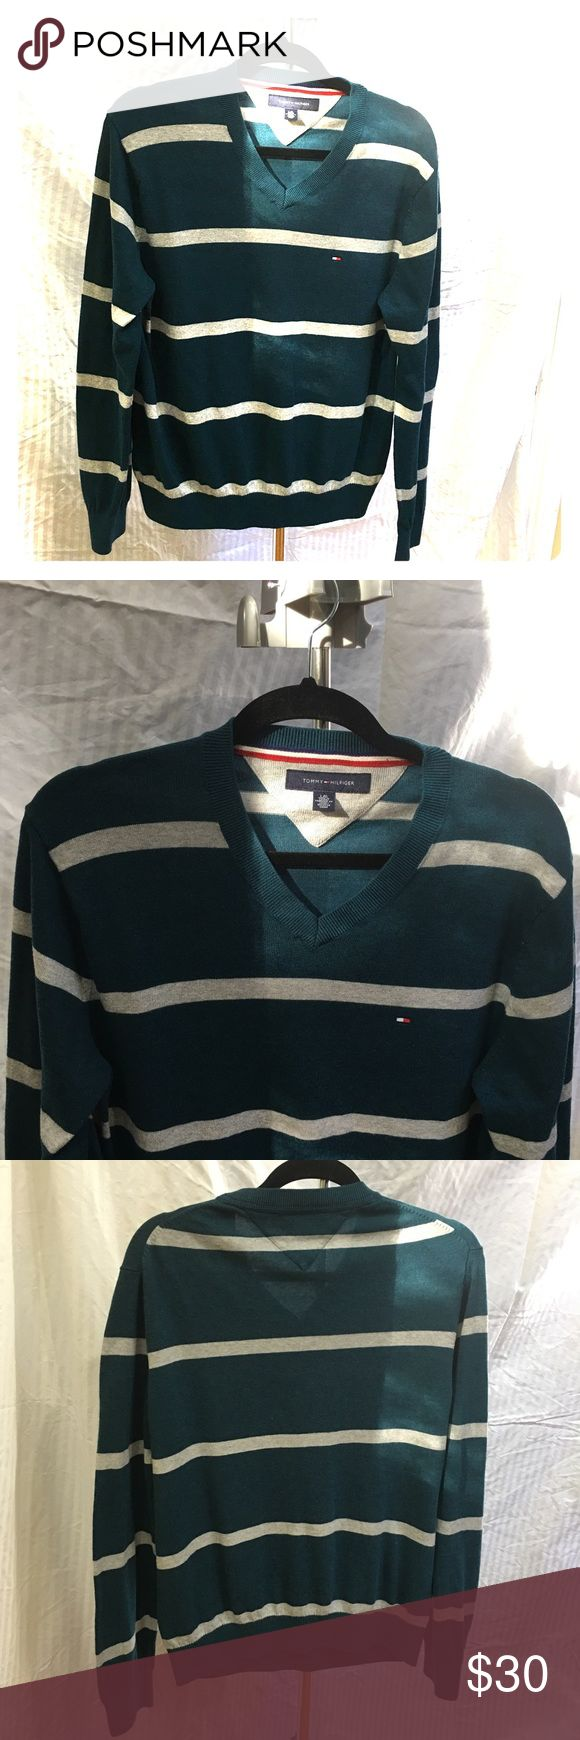 Men's Tommy Hilfiger sweater size Lg dark teal Men's Tommy Hilfiger sweater size Lg dark teal and gray. Only worn a few times so in great condition. Fabric is 60% cotton and 40% modal. Nice looking sweater Tommy Hilfiger Sweaters V-Neck